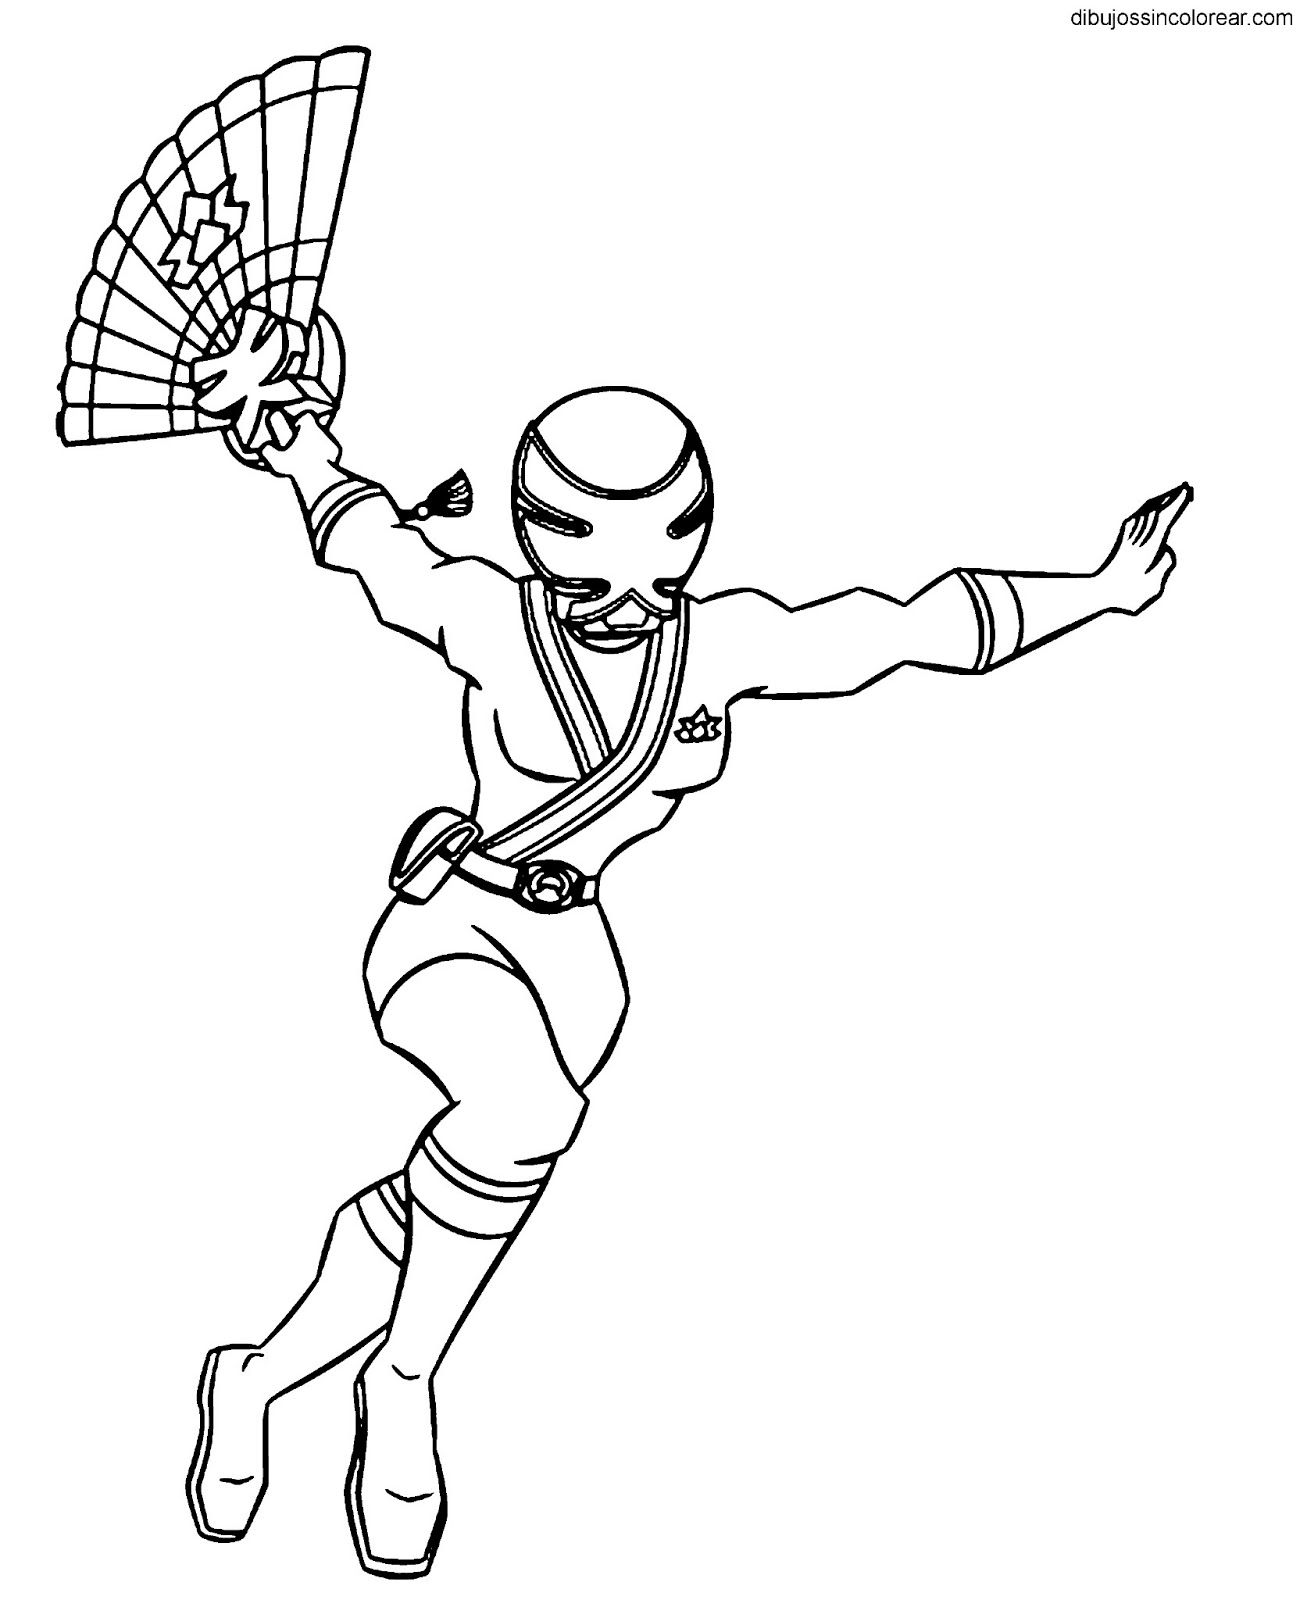 Excepcional Libre Power Ranger Para Colorear Ilustración - Ideas ...